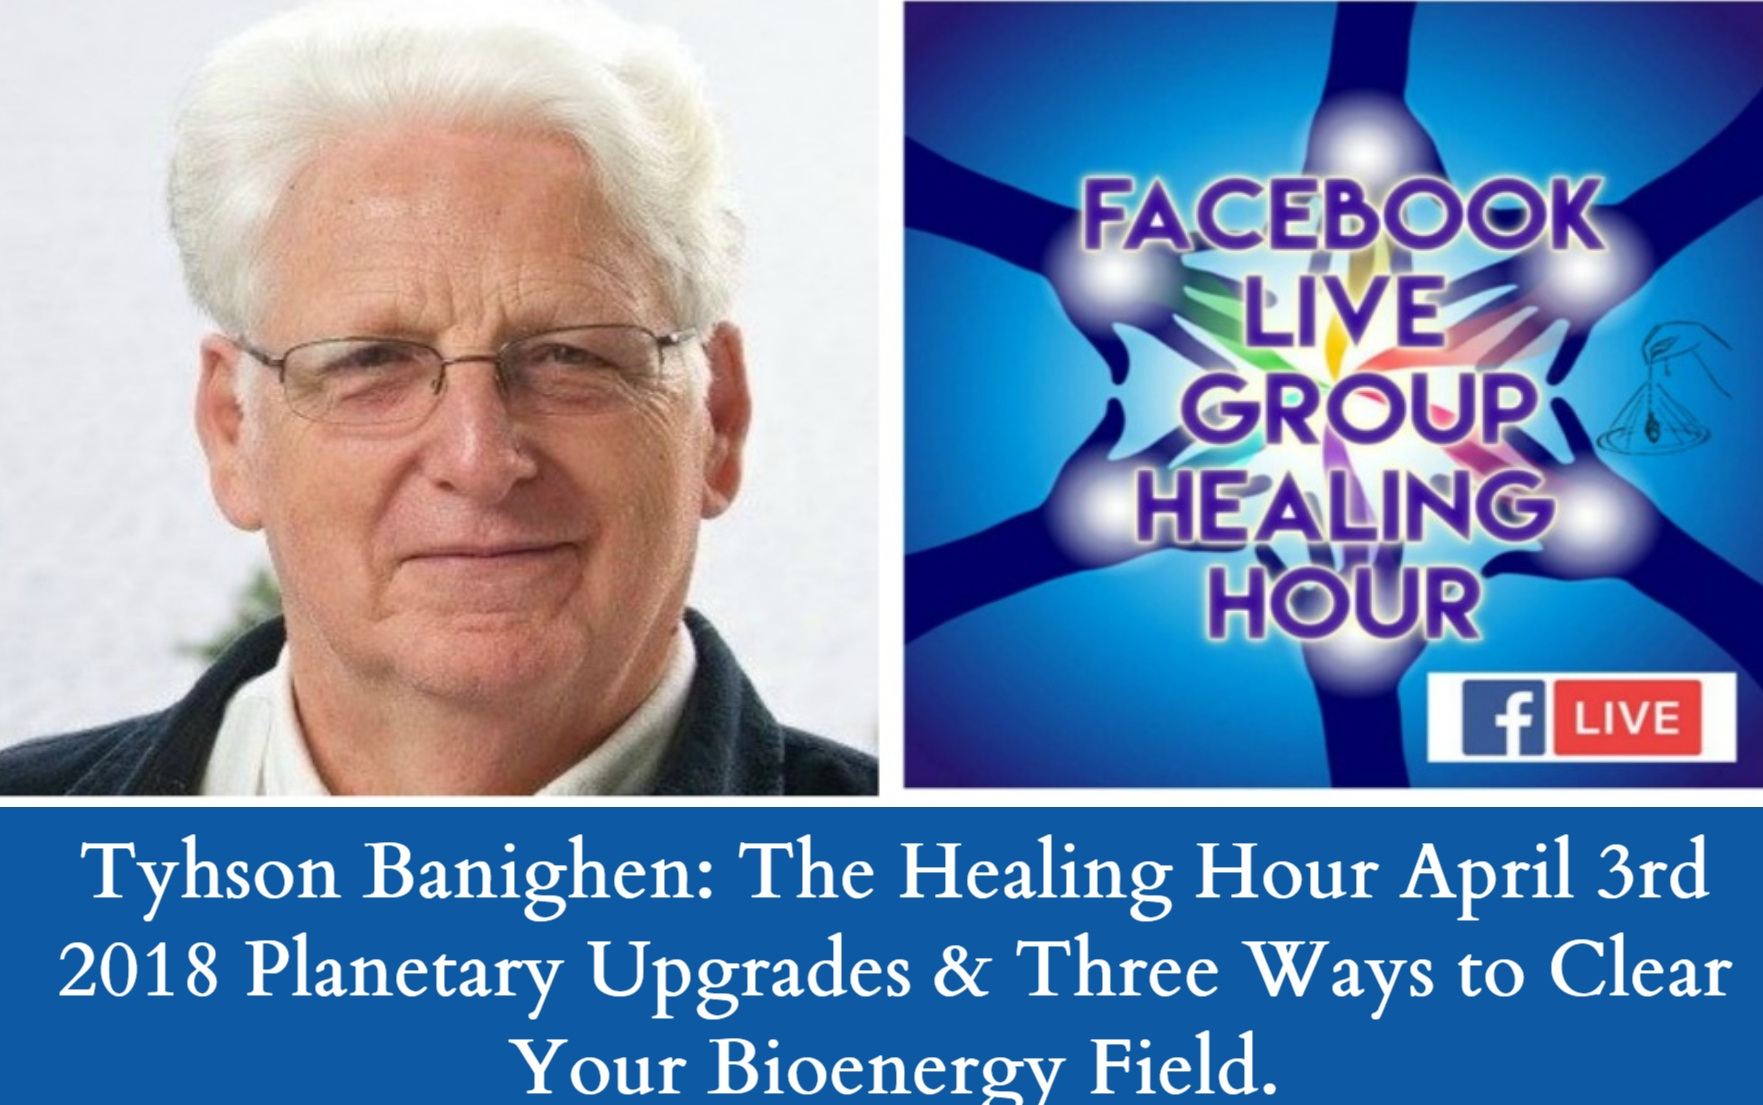 Artwork for Tyhson Banighen: The Healing Hour April 3rd 2018:Planetary Upgrades & Three Ways to Clear Your Bioenergy Field.